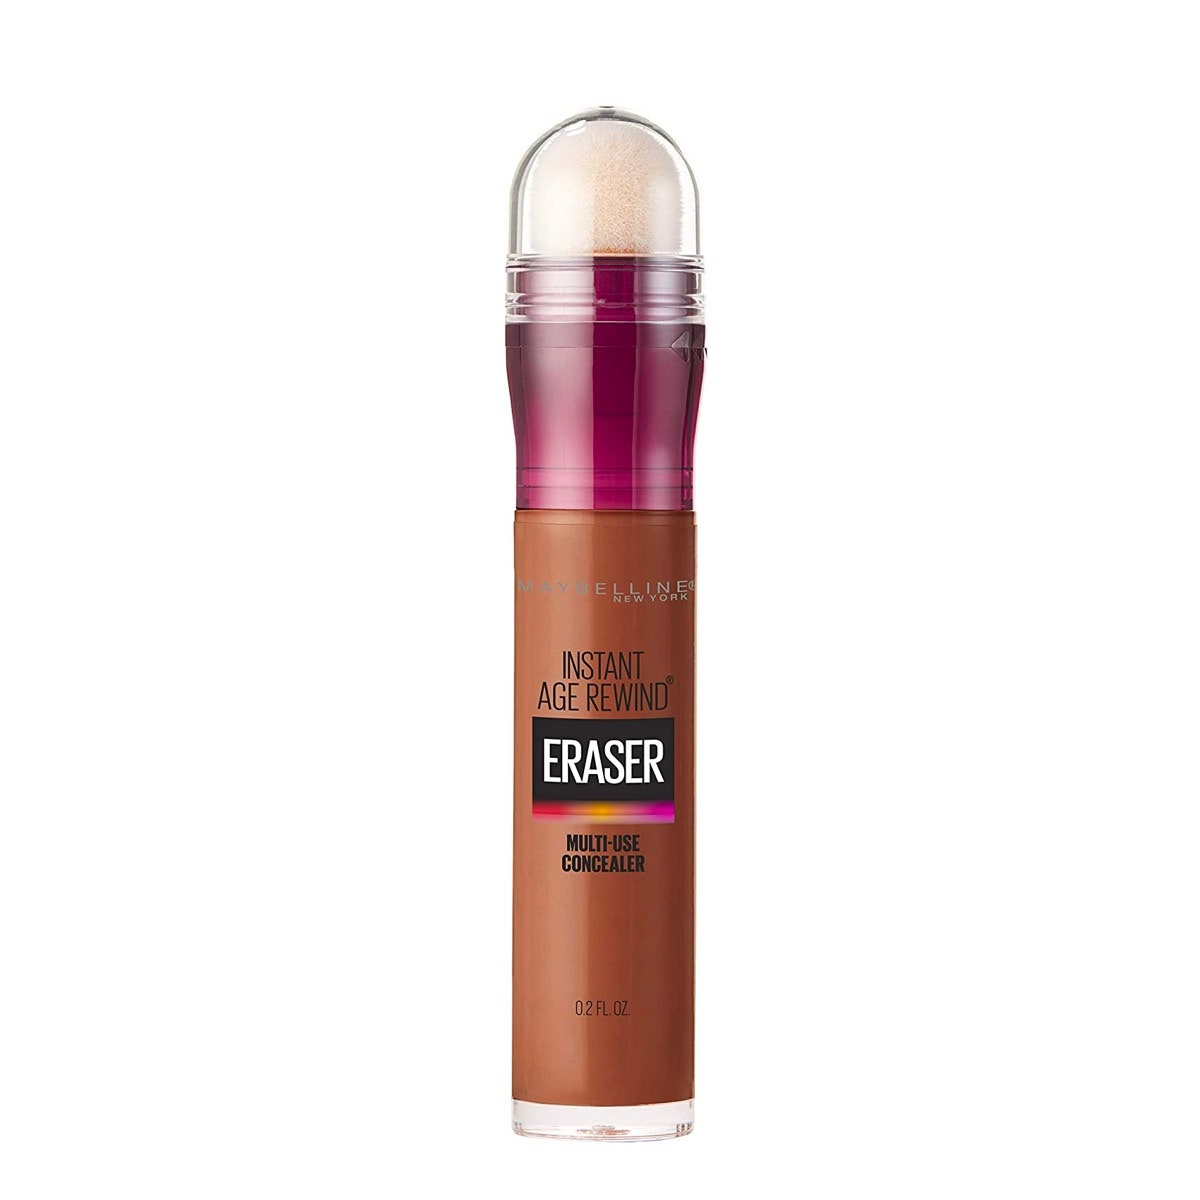 A tube of Maybelline Instant Age Rewind Concealer on a white background